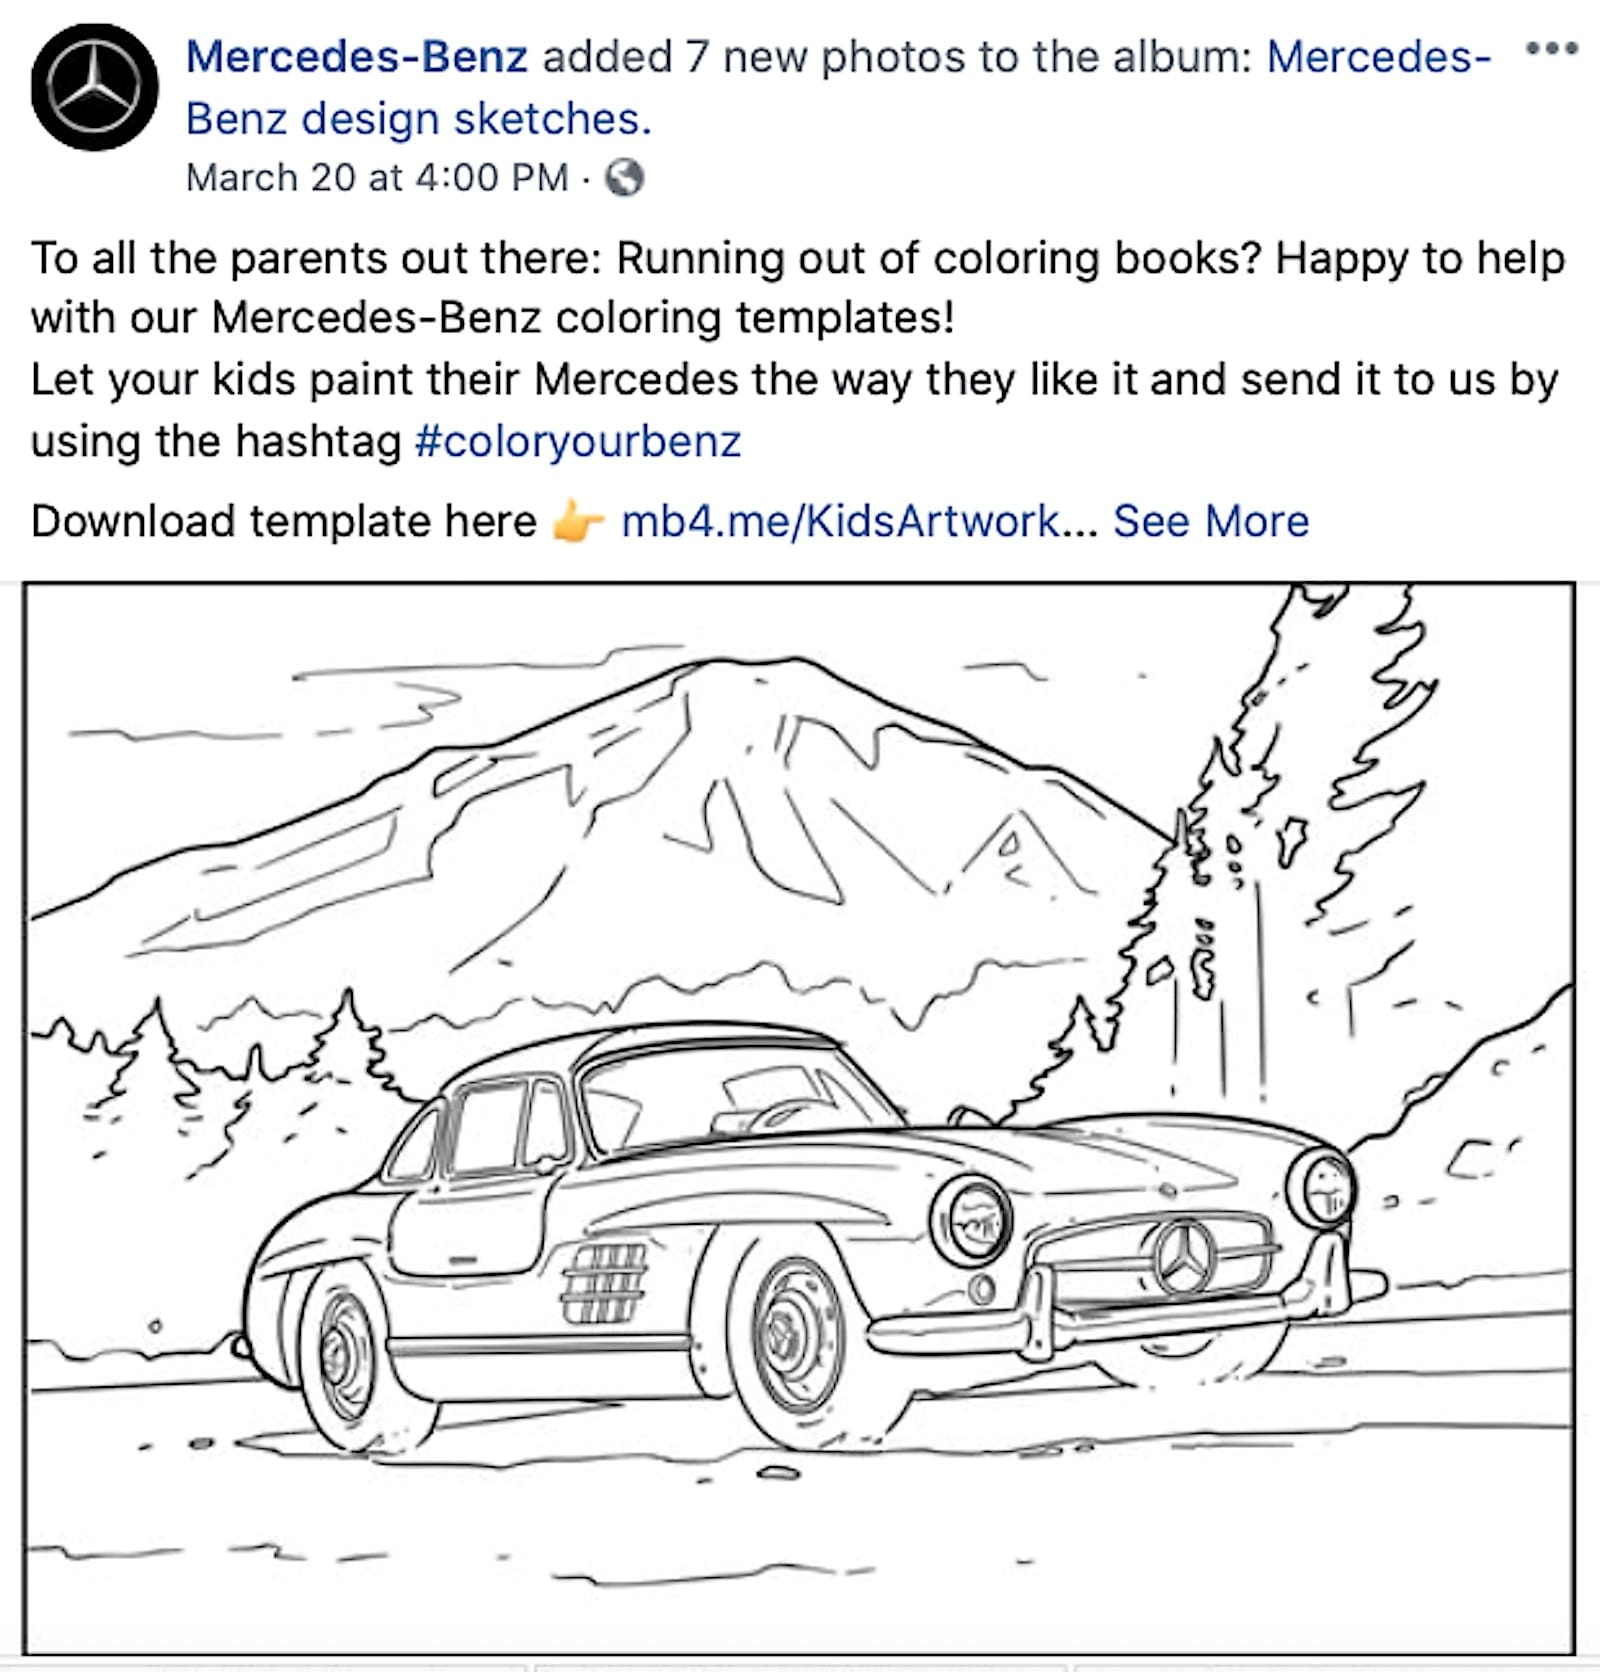 - Audi's Free Coloring Book Helps Pass Time During Shelter In Place